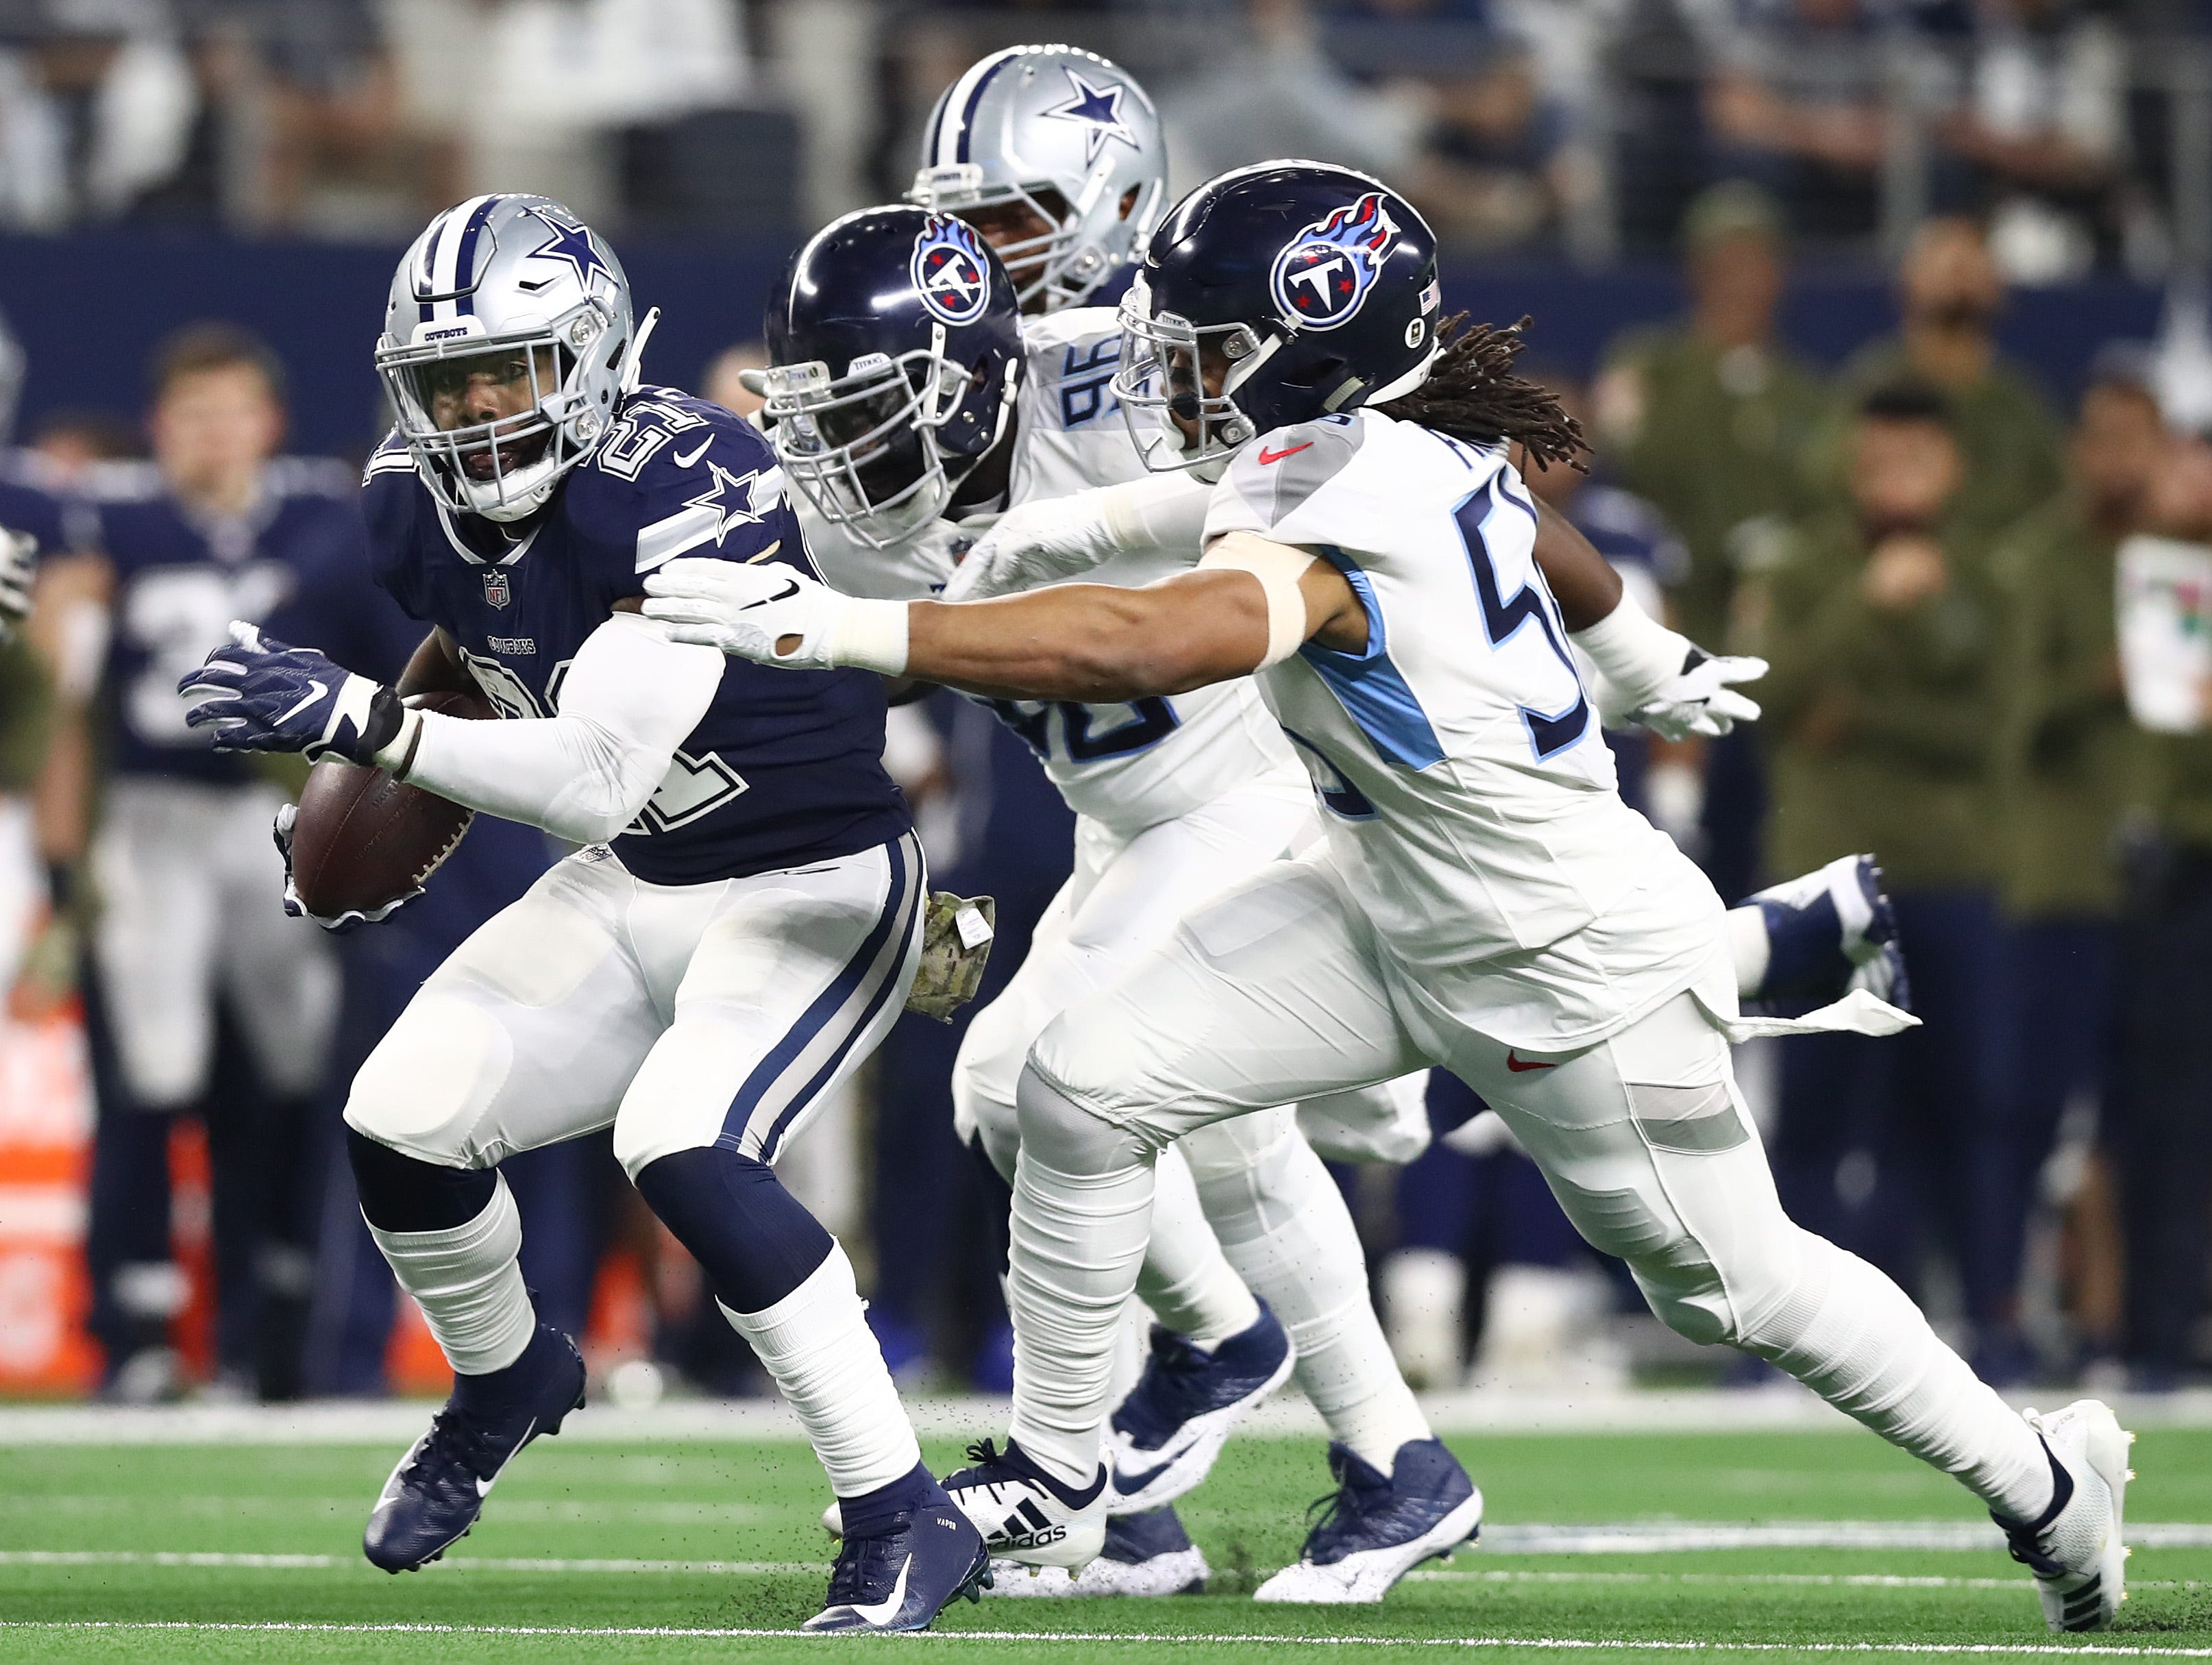 Nov 5, 2018; Arlington, TX, USA; Dallas Cowboys running back Ezekiel Elliott (21) runs with the ball against Tennessee Titans linebacker Sharif Finch (56) in the first quarter at AT&T Stadium.